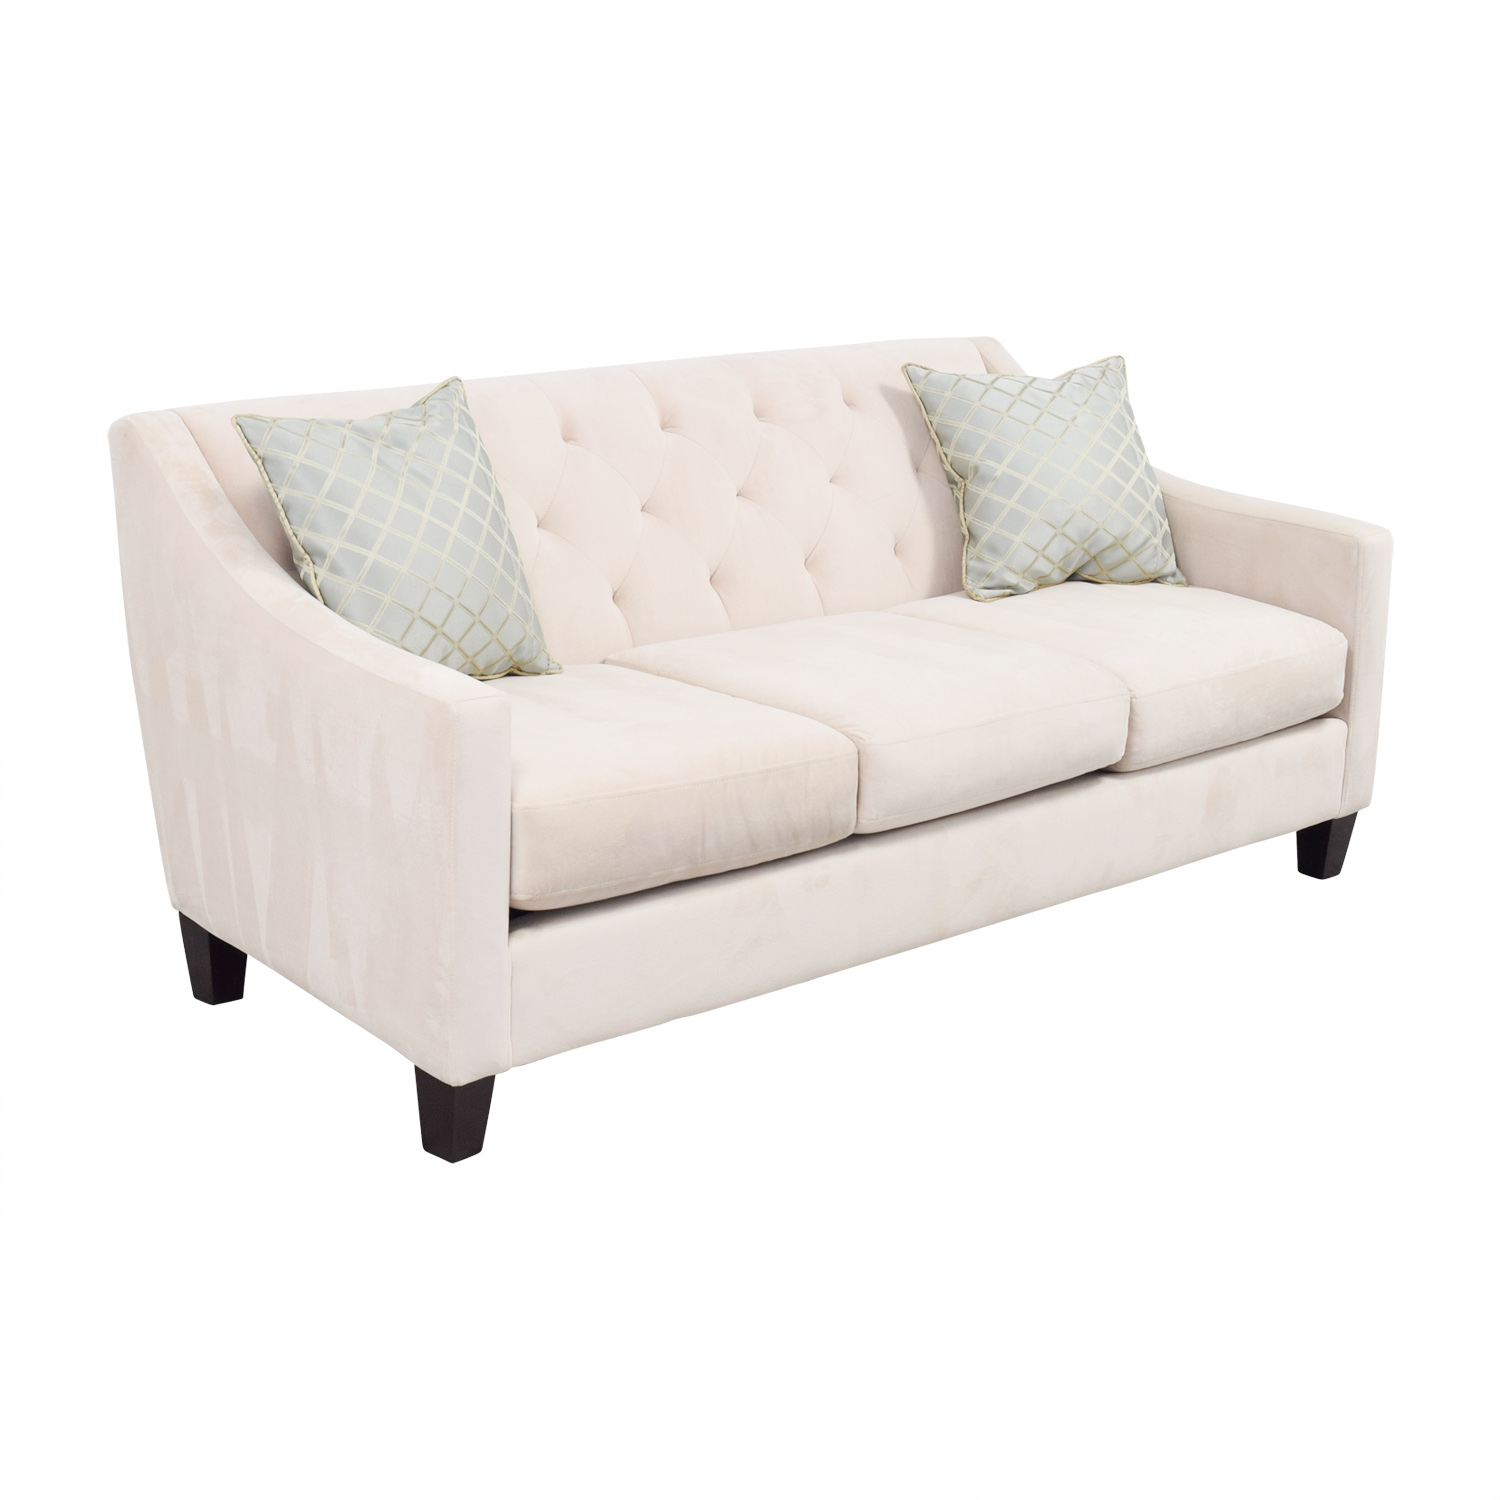 30 off max home max home beige semi tufted three for Semi classic sofa